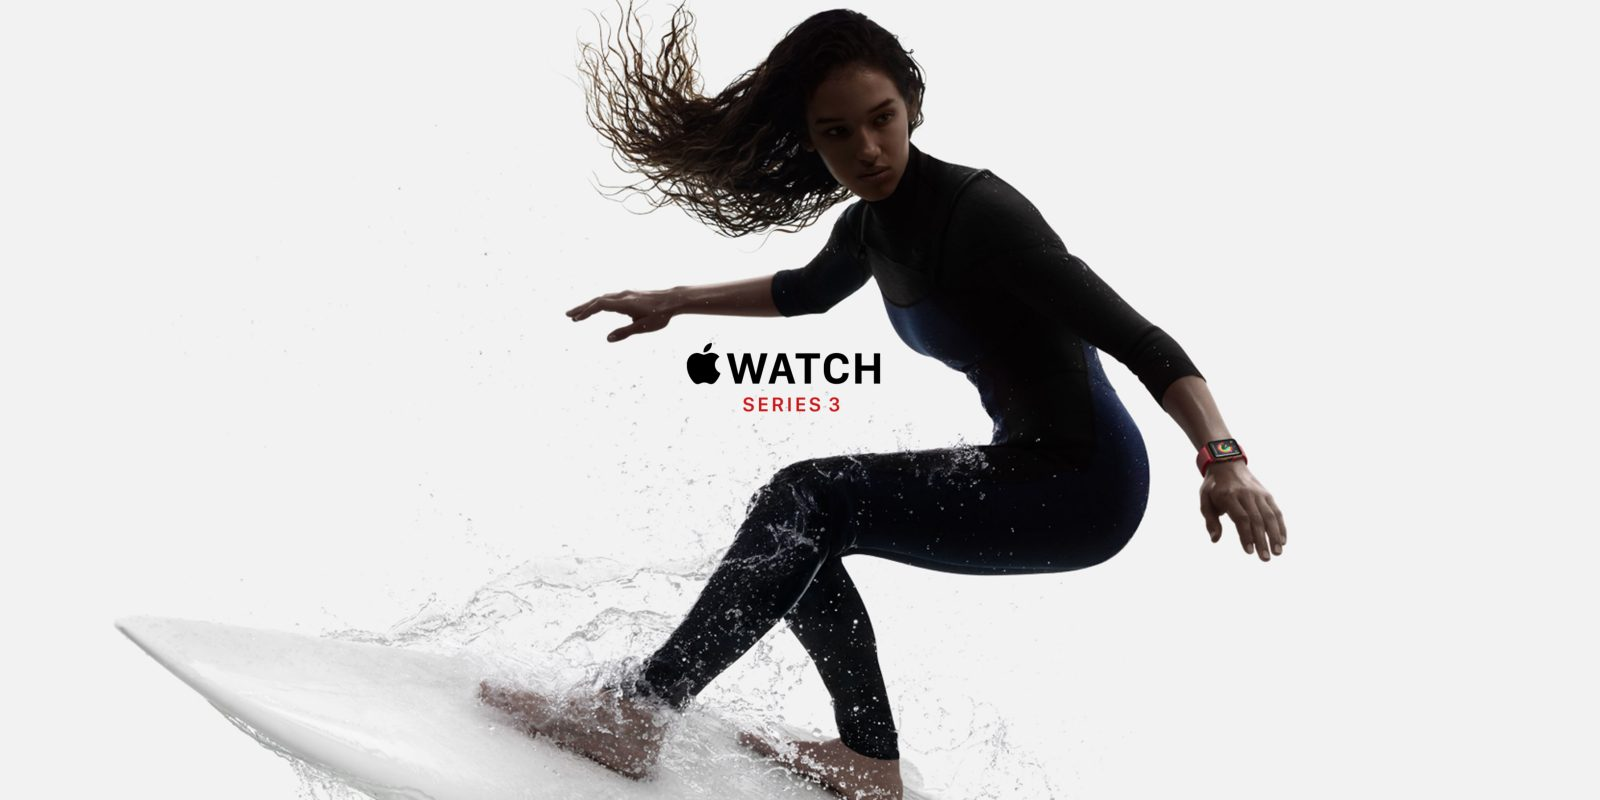 Apple Watch Series 3 is on sale from $190 (Up to $90 off)